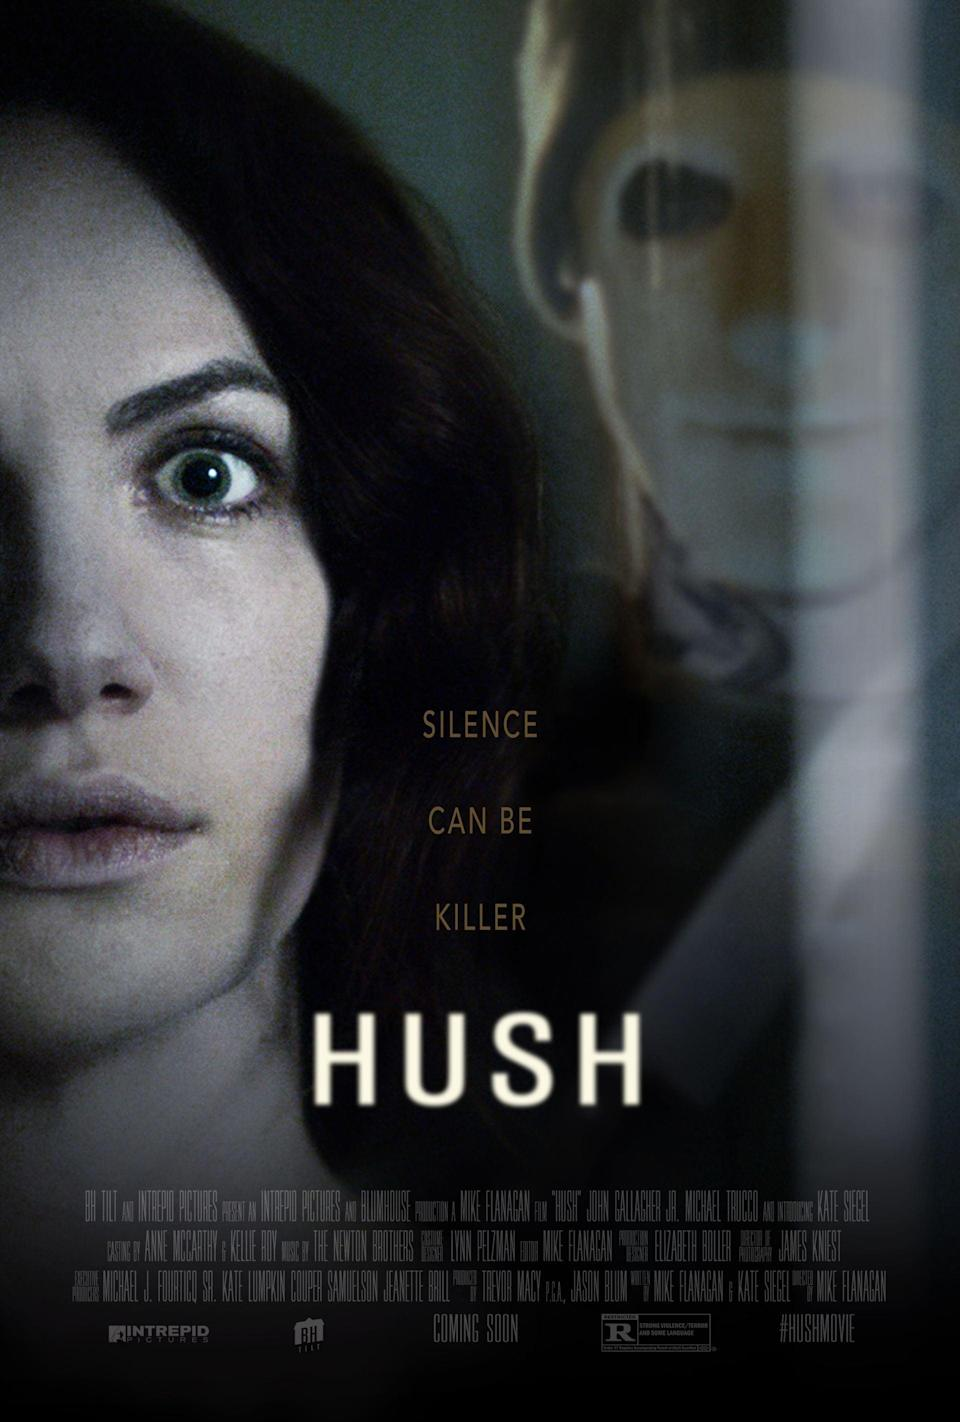 """<p>How to you outsmart a sadistic killer hunting you in an isolated cabin . . . when you can't hear a thing? Let's just say there's a reason <strong>Hush</strong> has a <a href=""""https://www.rottentomatoes.com/m/hush_2016"""" class=""""link rapid-noclick-resp"""" rel=""""nofollow noopener"""" target=""""_blank"""" data-ylk=""""slk:92 percent on Rotten Tomatoes"""">92 percent on Rotten Tomatoes</a>. </p><p><a href=""""https://www.netflix.com/title/80091879"""" class=""""link rapid-noclick-resp"""" rel=""""nofollow noopener"""" target=""""_blank"""" data-ylk=""""slk:Watch Hush on Netflix now."""">Watch <strong>Hush</strong> on Netflix now. </a></p>"""